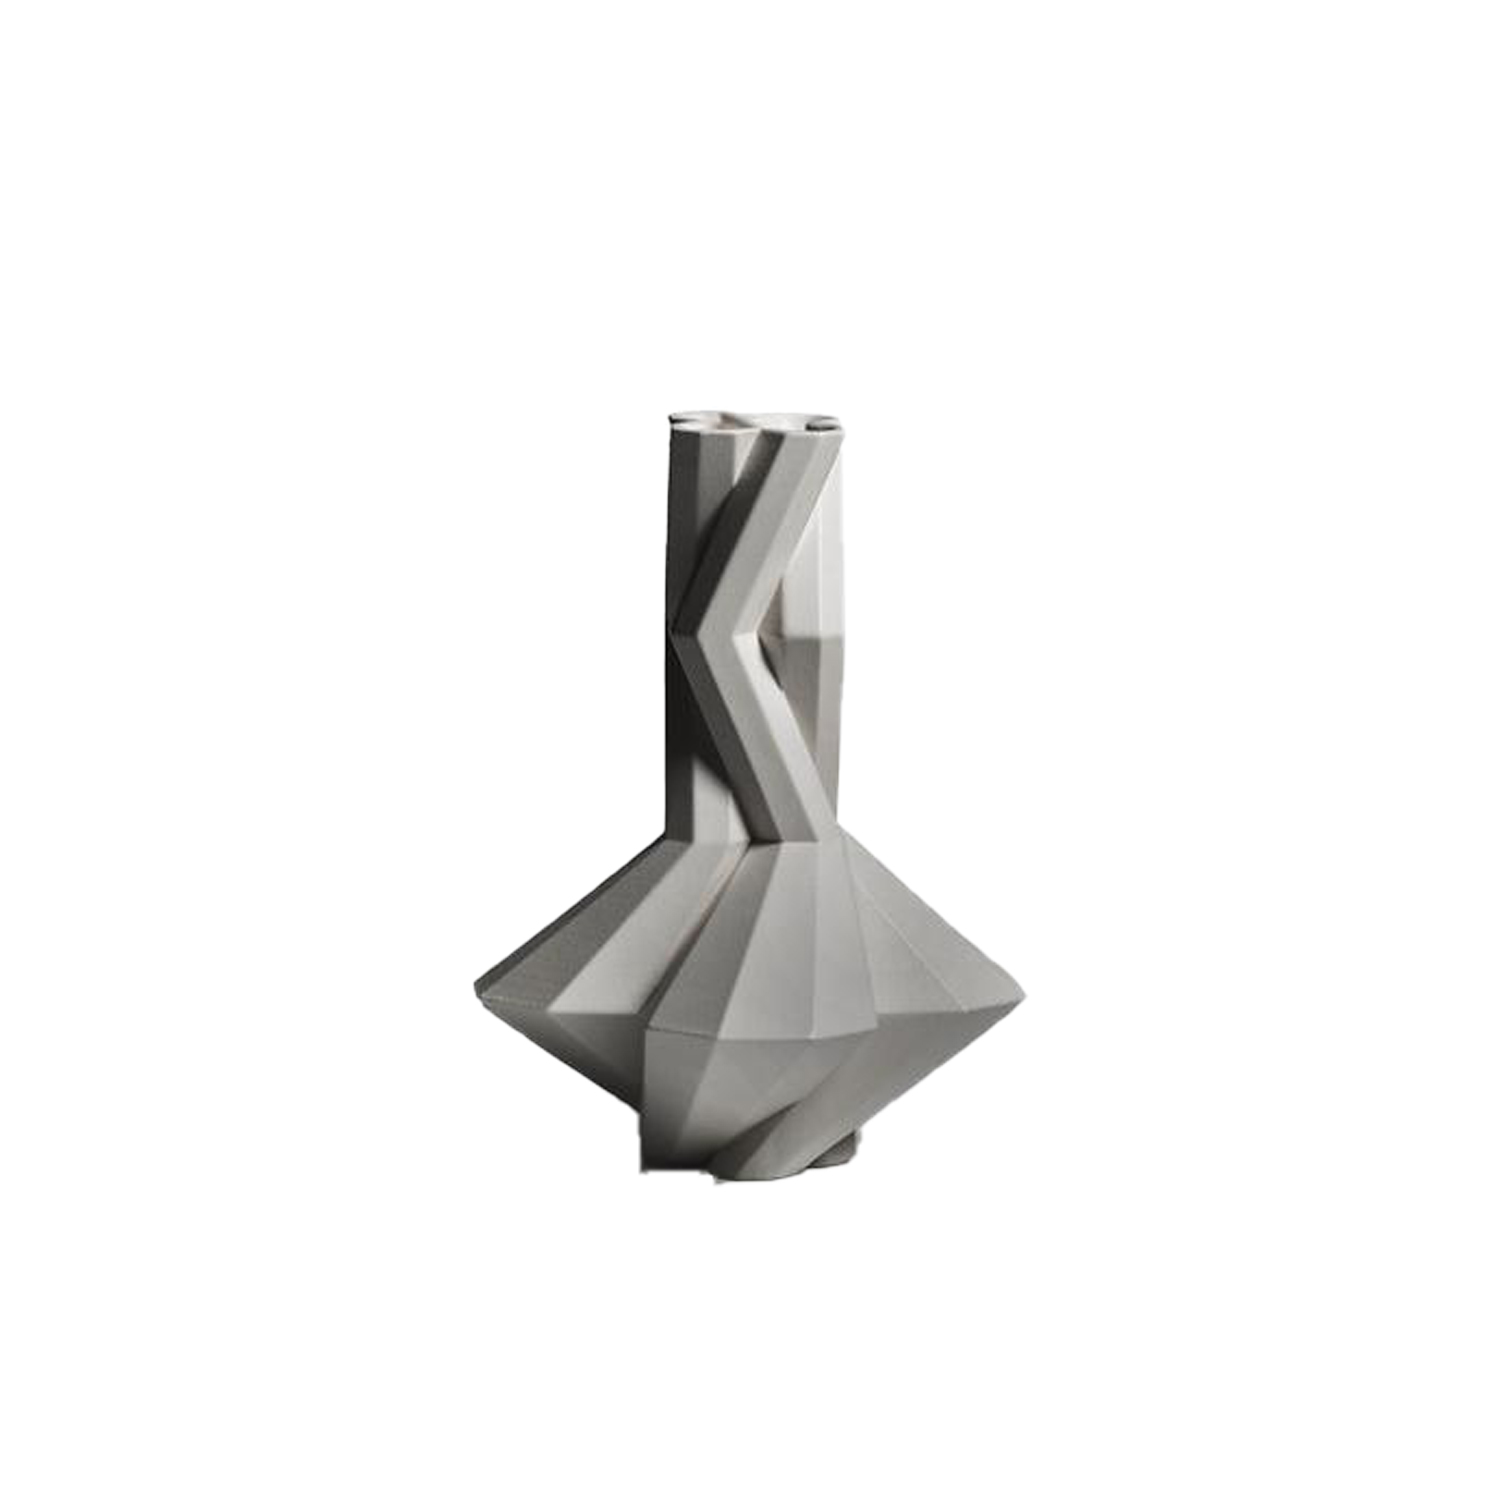 Fortress Cupola Grey - Designer Lara Bohinc explores the marriage of ancient and futuristic form in the new Fortress Vase range, which has created a more complex geometric and modern structure from the original inspiration of the octagonal towers at the Diocletian Palace in Croatia. The resulting hexagonal blocks interlock and embrace to allow the play of light and shade on the many surfaces and angles. There are four Fortress shapes: the larger Column and Castle (45cm height), the Pillar (30cm height) and the Tower vase (37cm height). These are hand made from ceramic in a small Italian artisanal workshop and come in three finishes: dark gold, bronze and speckled white.  | Matter of Stuff